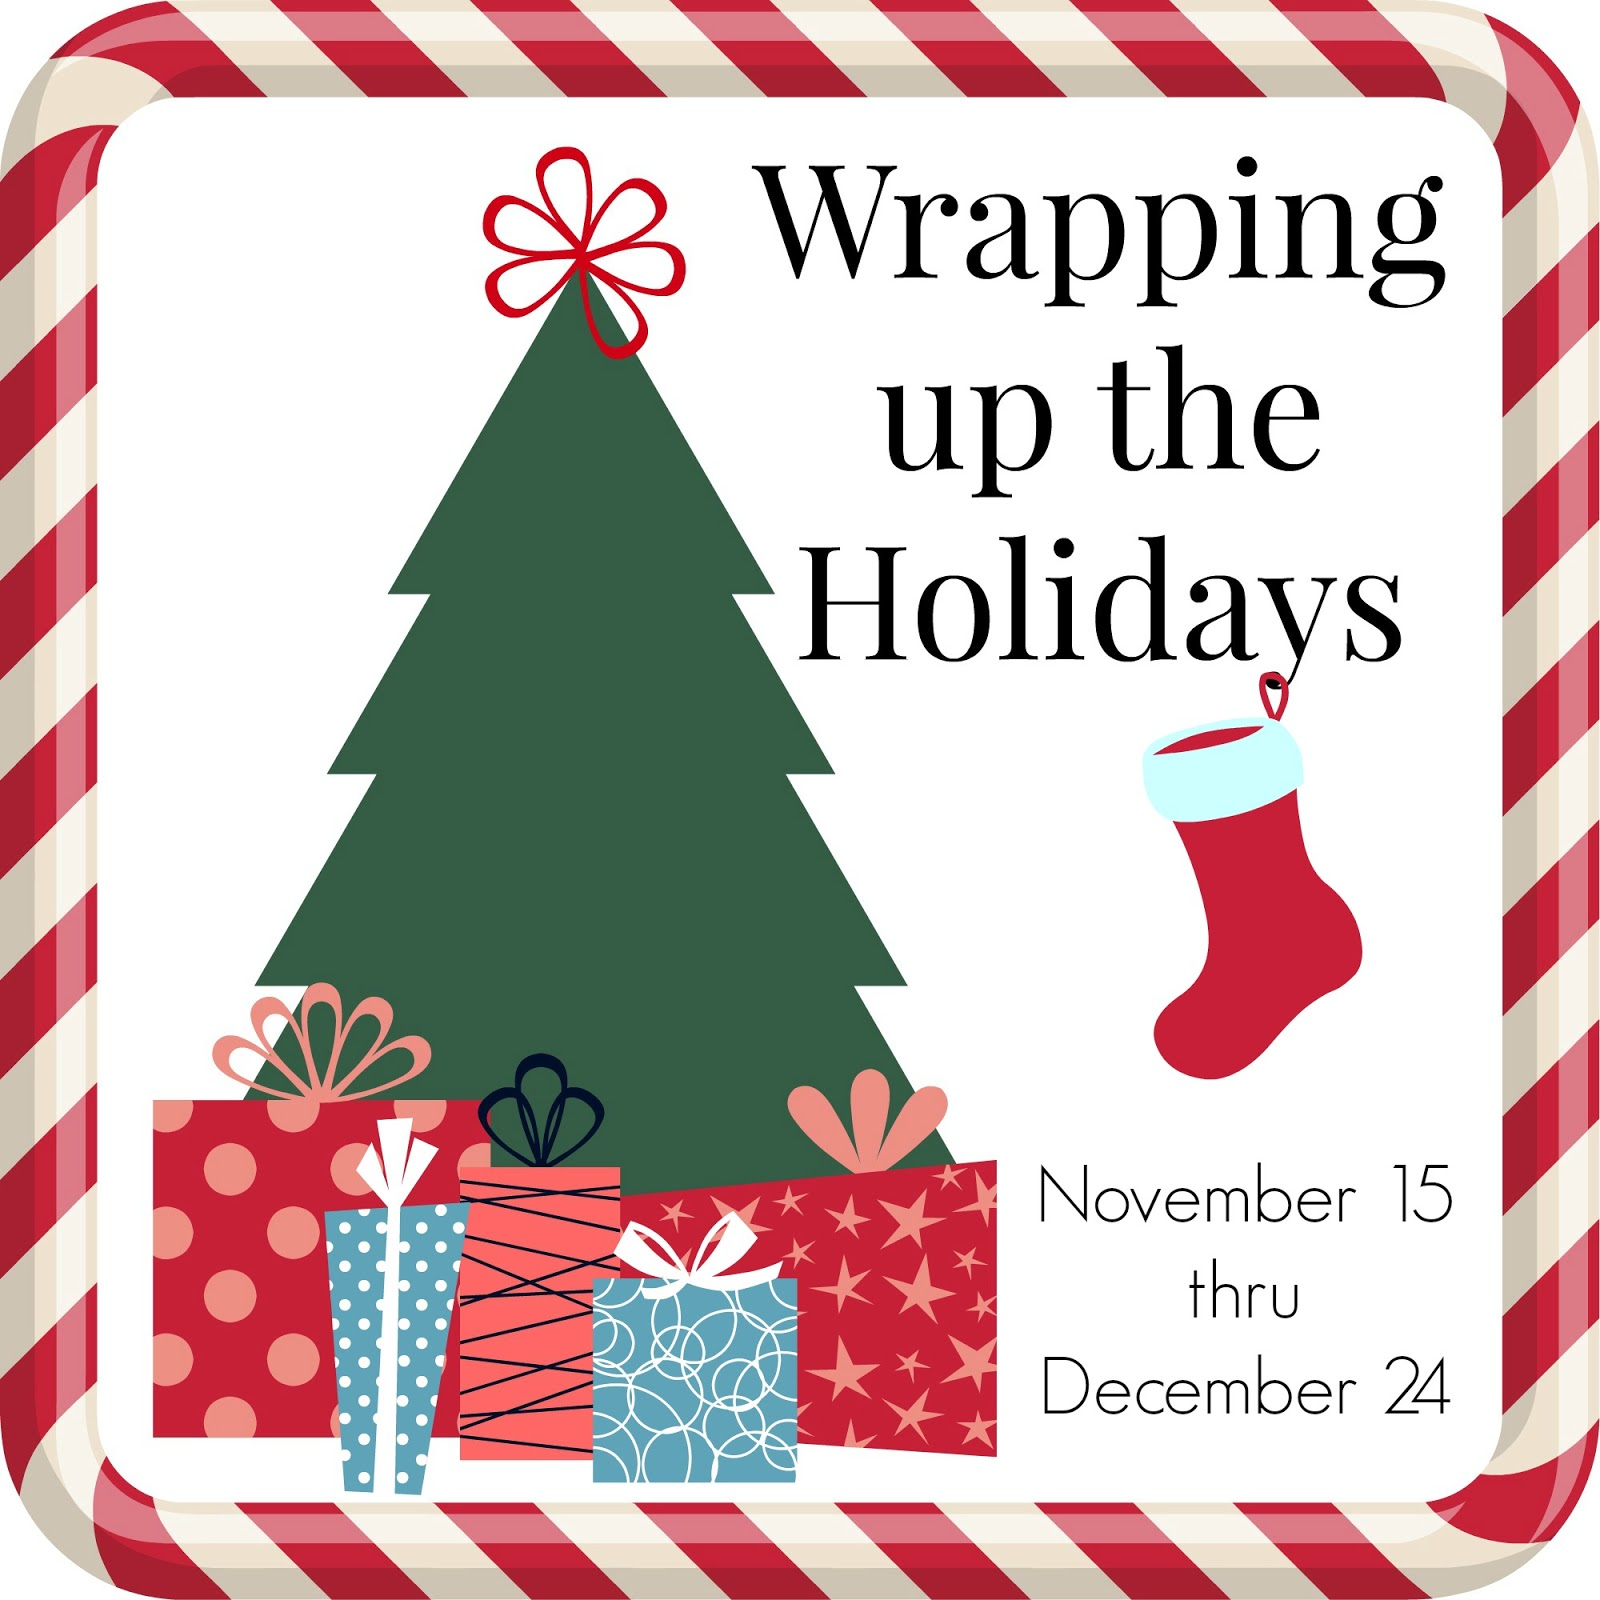 Wrapping Up the Holidays!